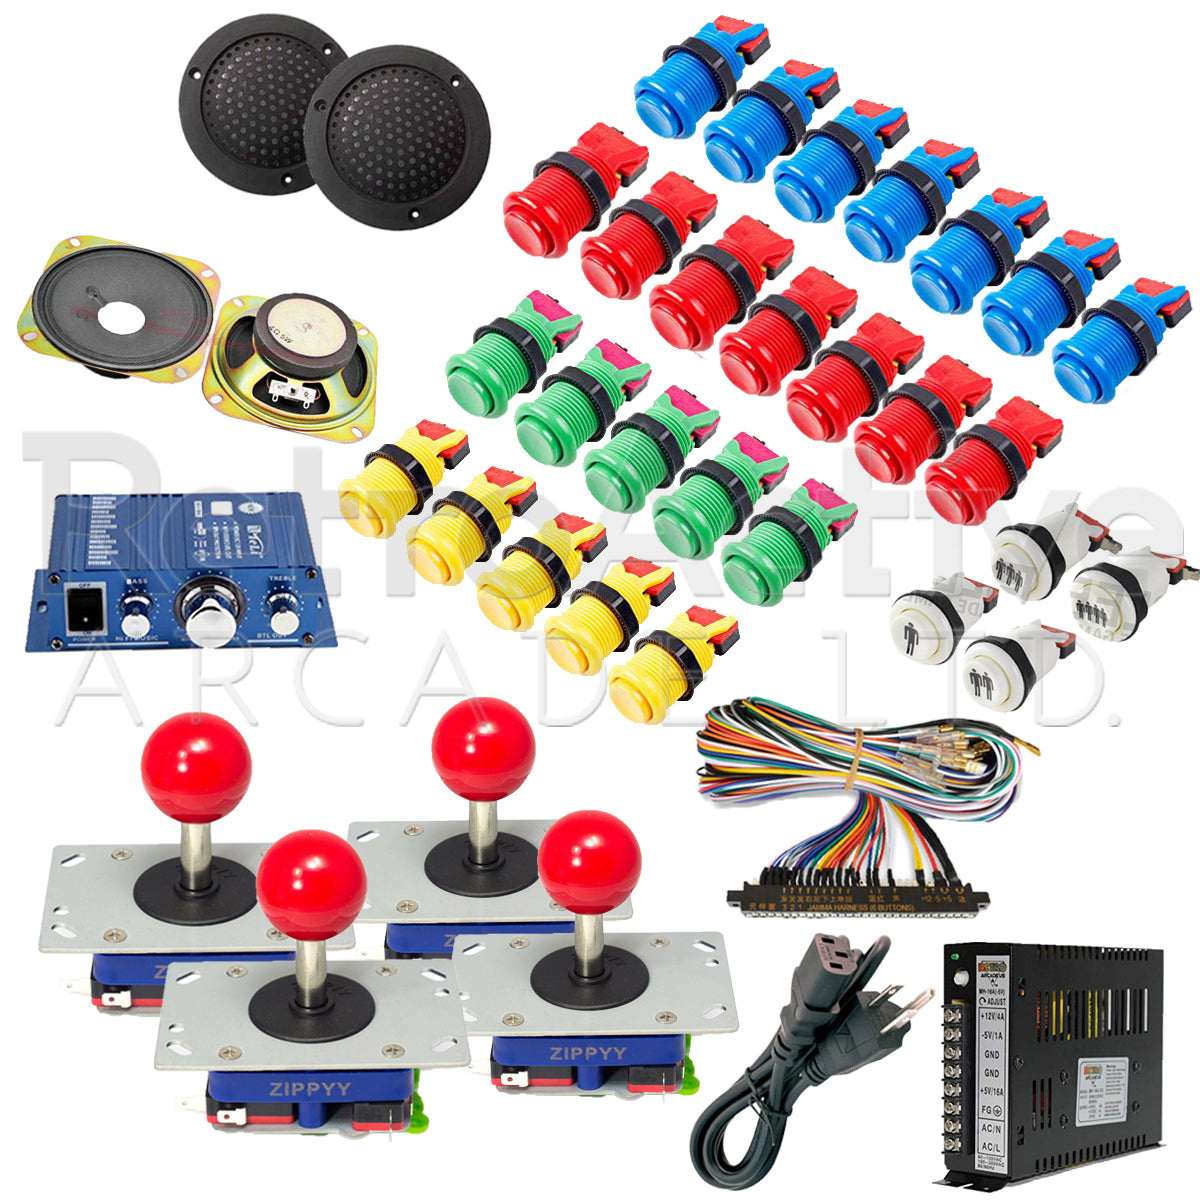 4 Player Complete Stand-Up Arcade Kit Arcade Bundles Retro Active Arcade - Retro Active Arcade